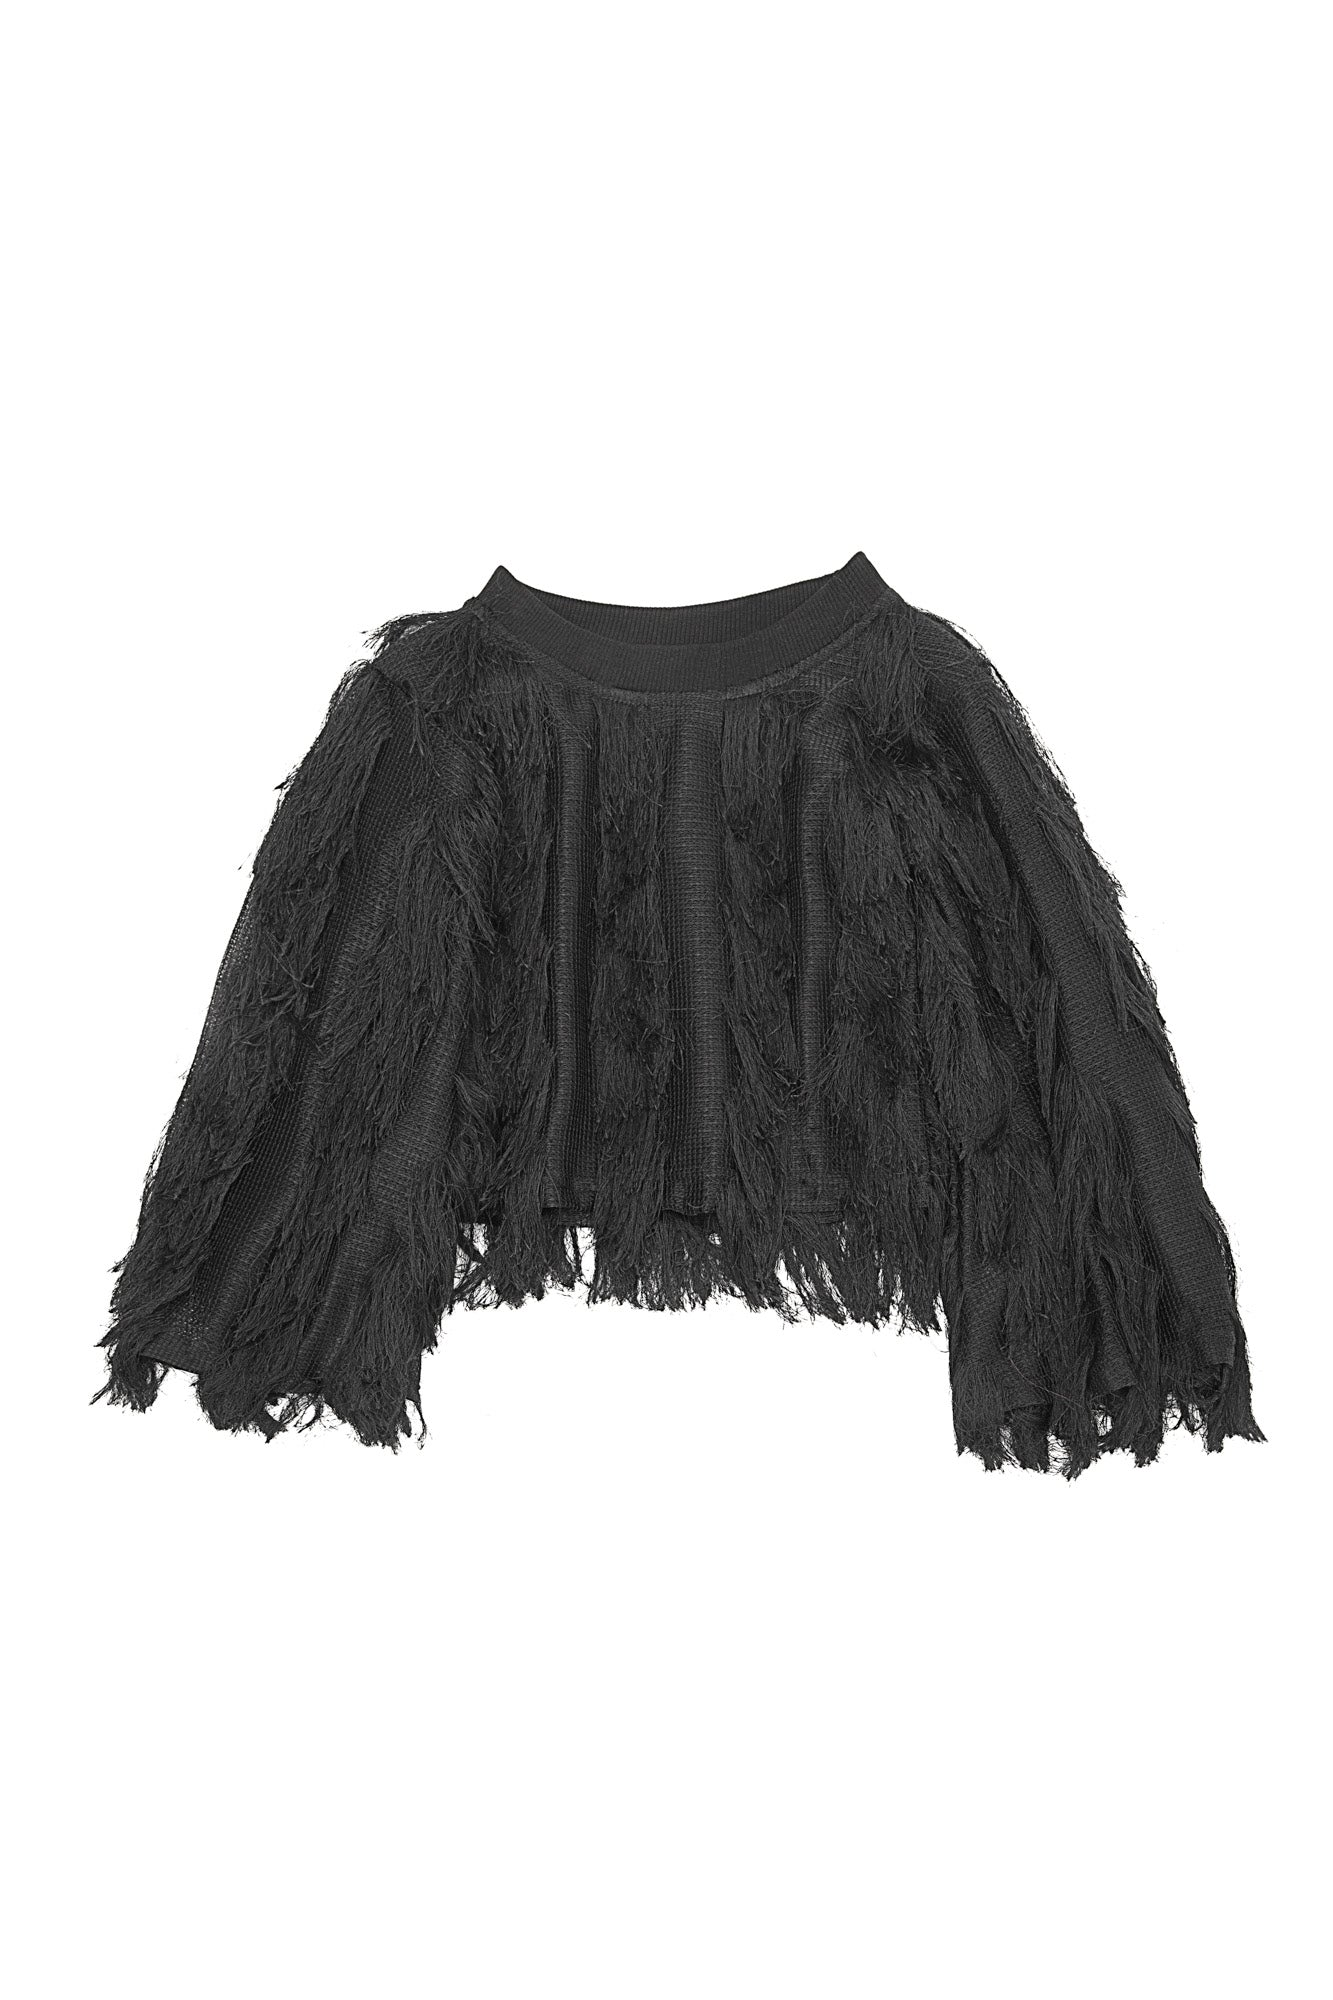 Black Fringe Sweater | Unique Finds for Kids